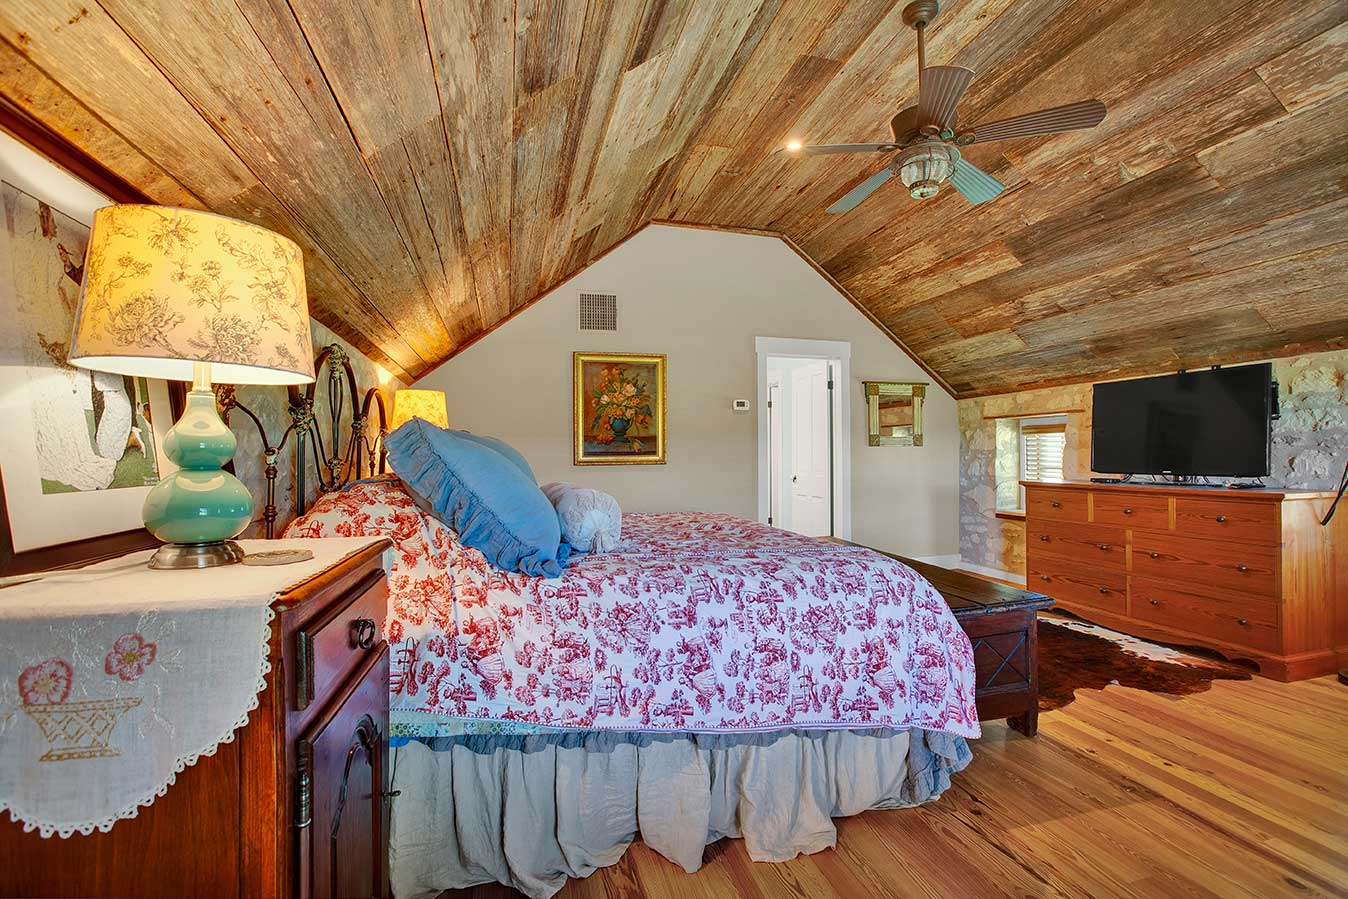 fredericksburg-realty-squaw-creek-ranch-real-estate-land-for-sale-home-house-historic-26.jpg